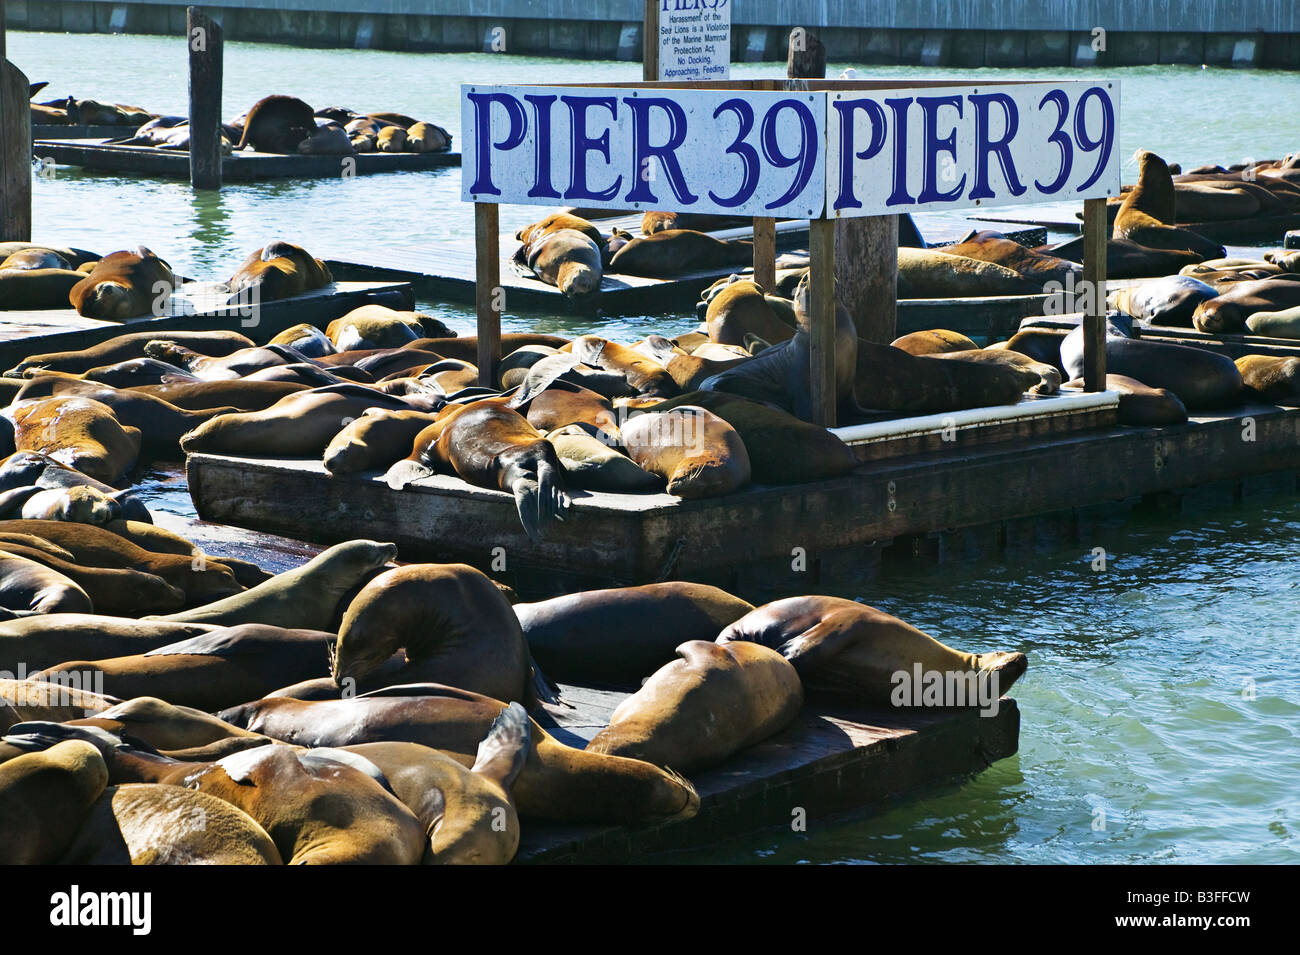 Seal ions Pier 39 - Stock Image